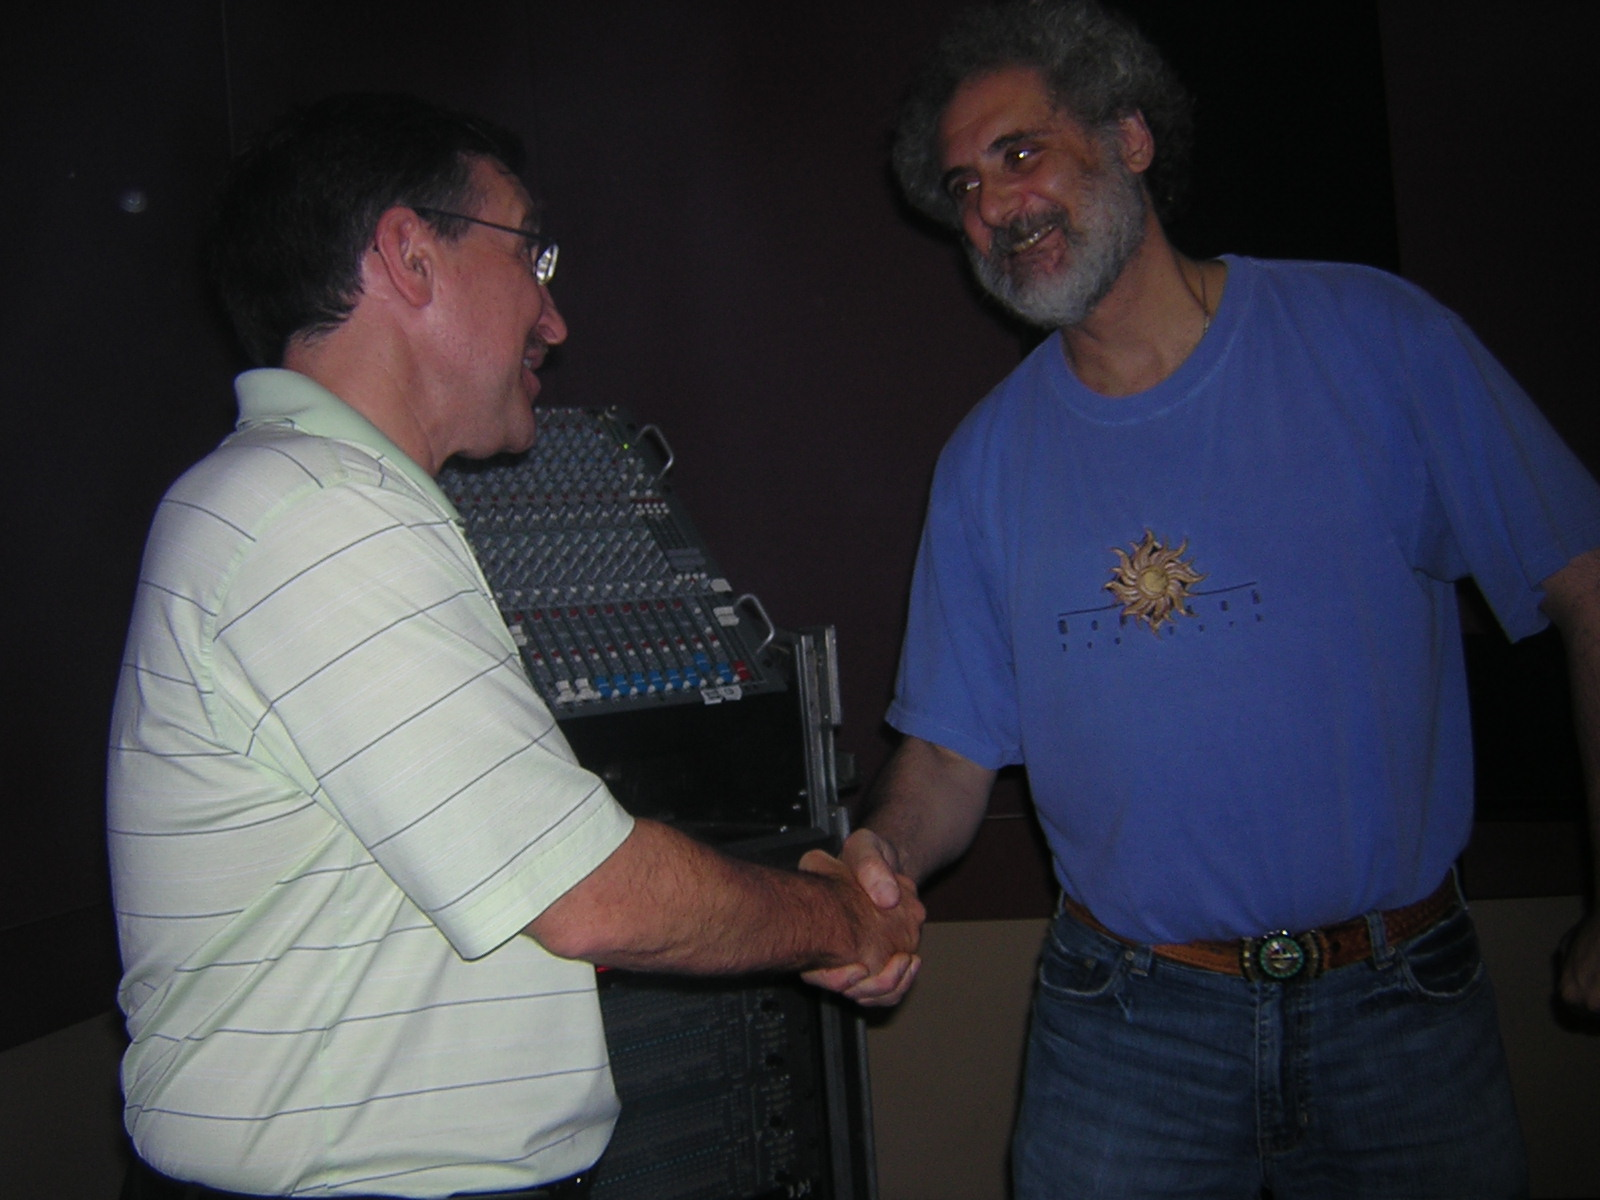 Maurice and Rich shaking hands after 20 years